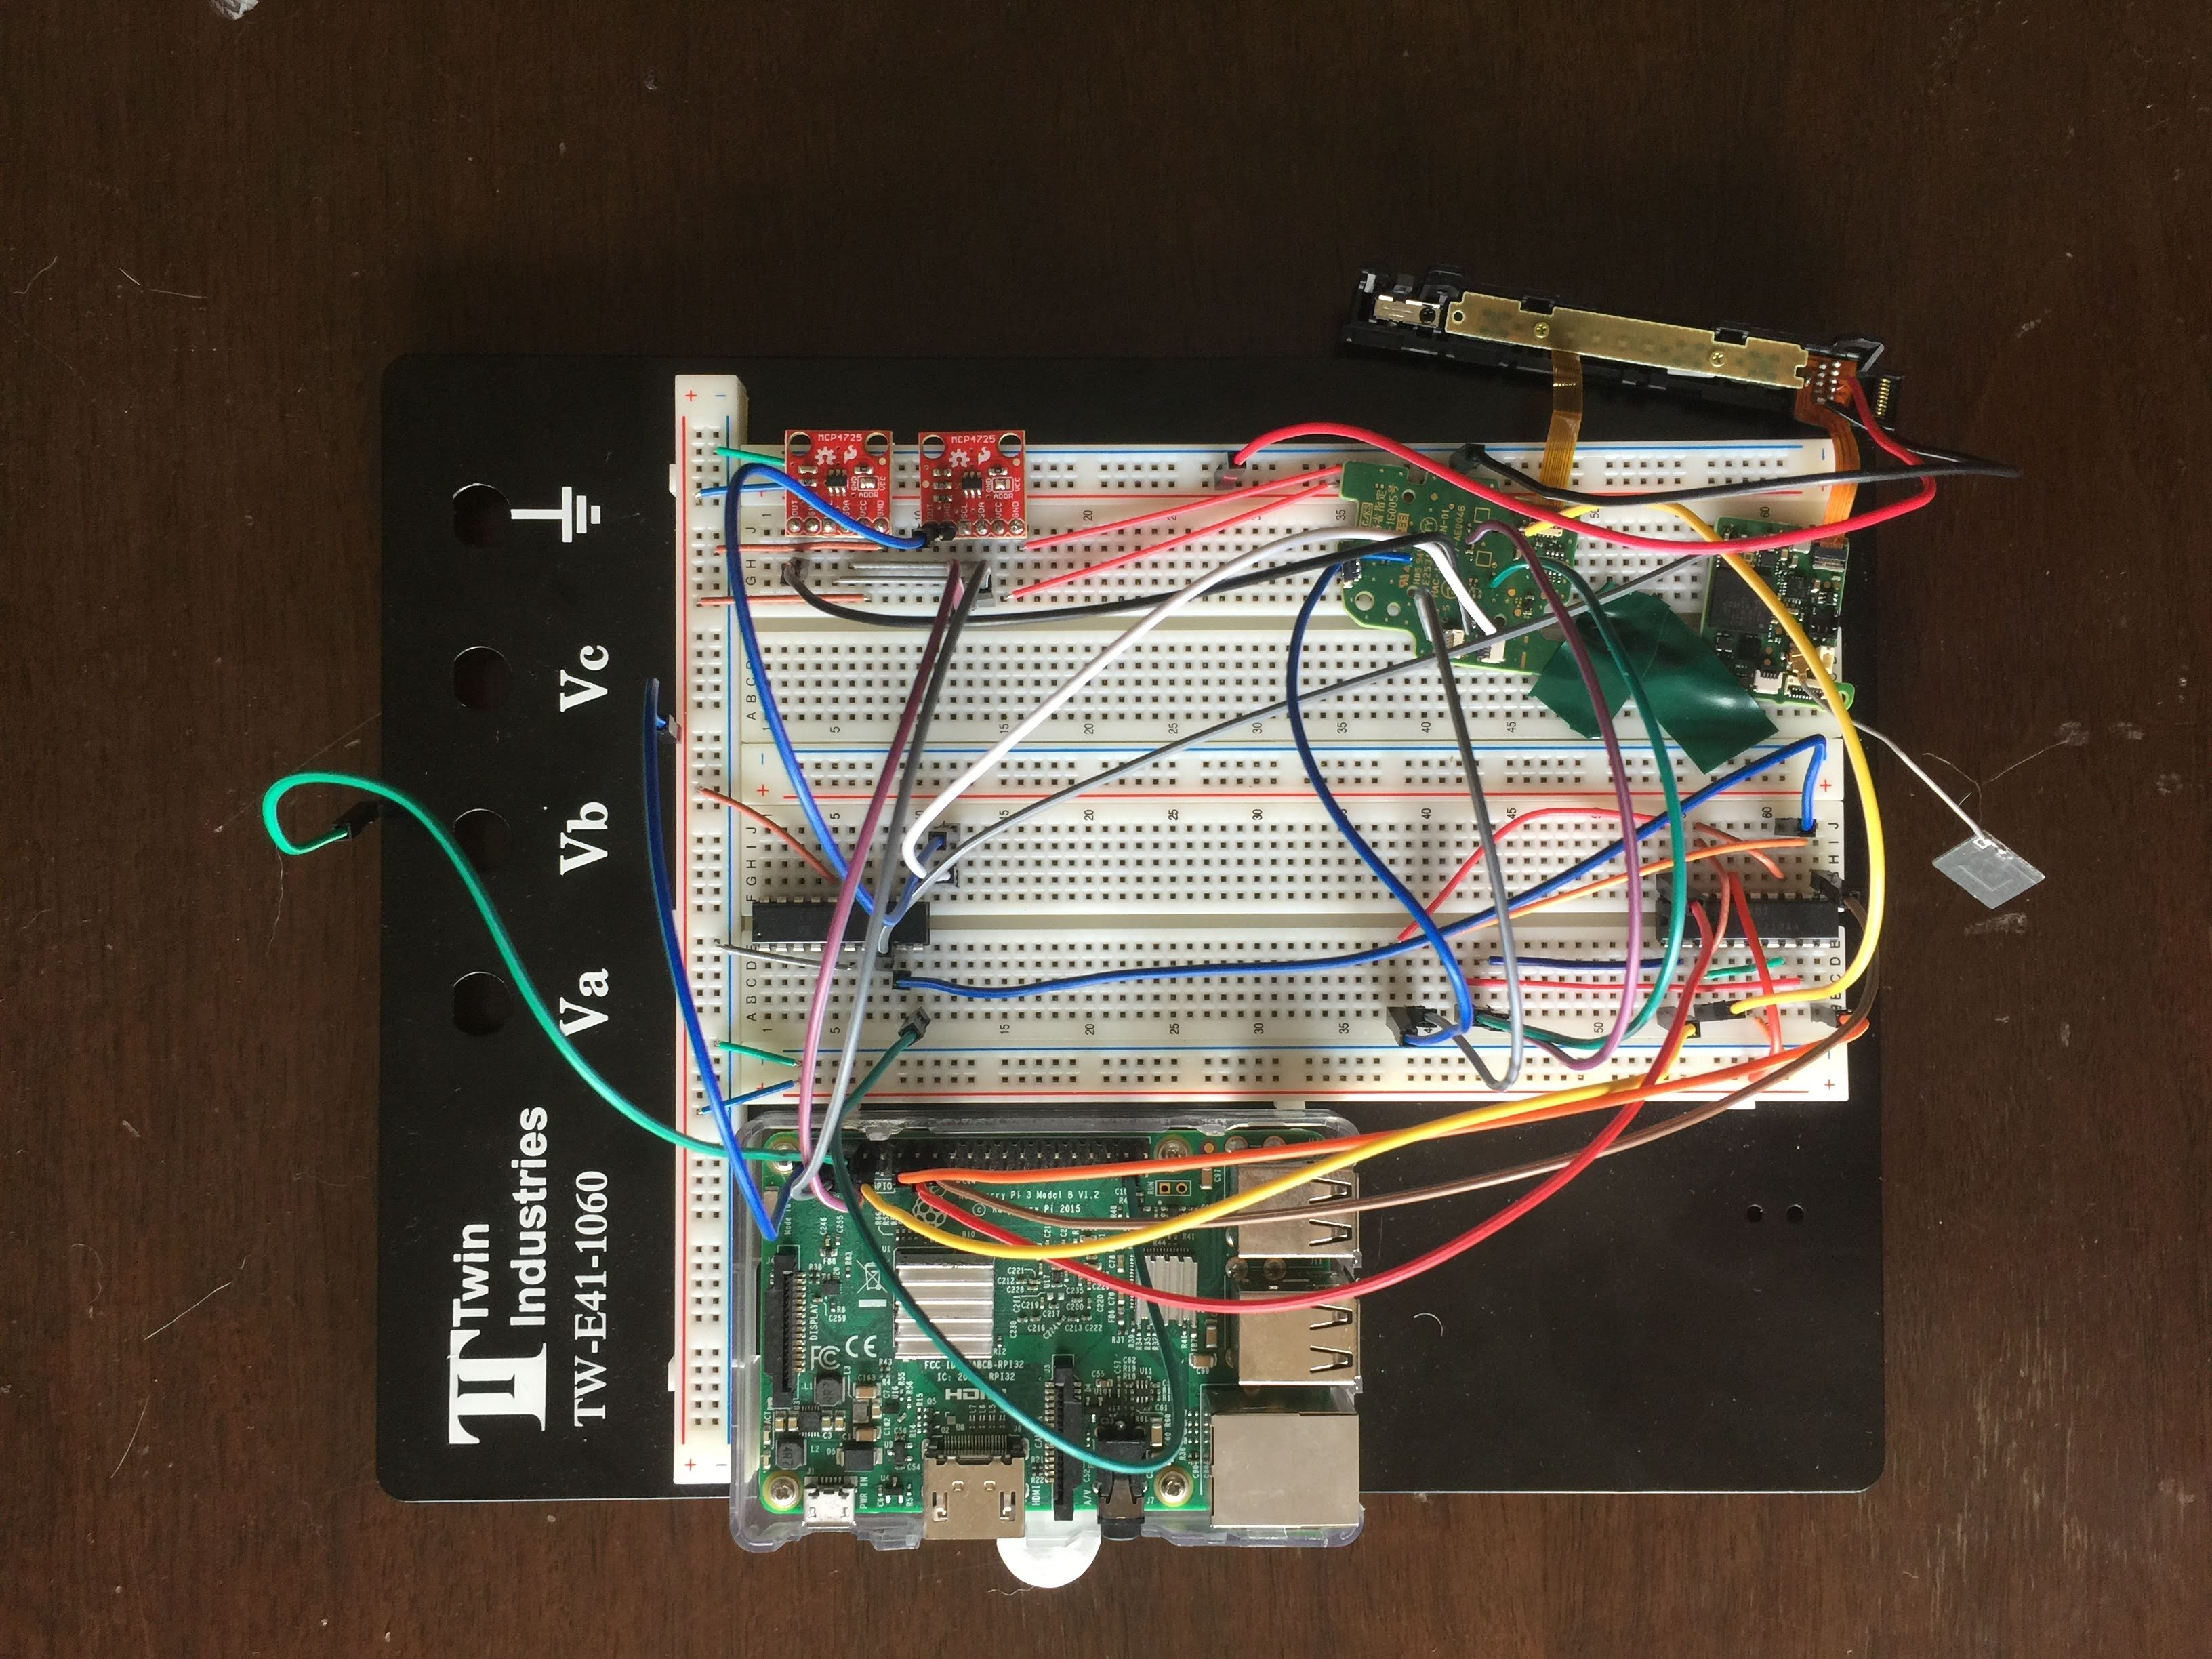 breadboard for the project